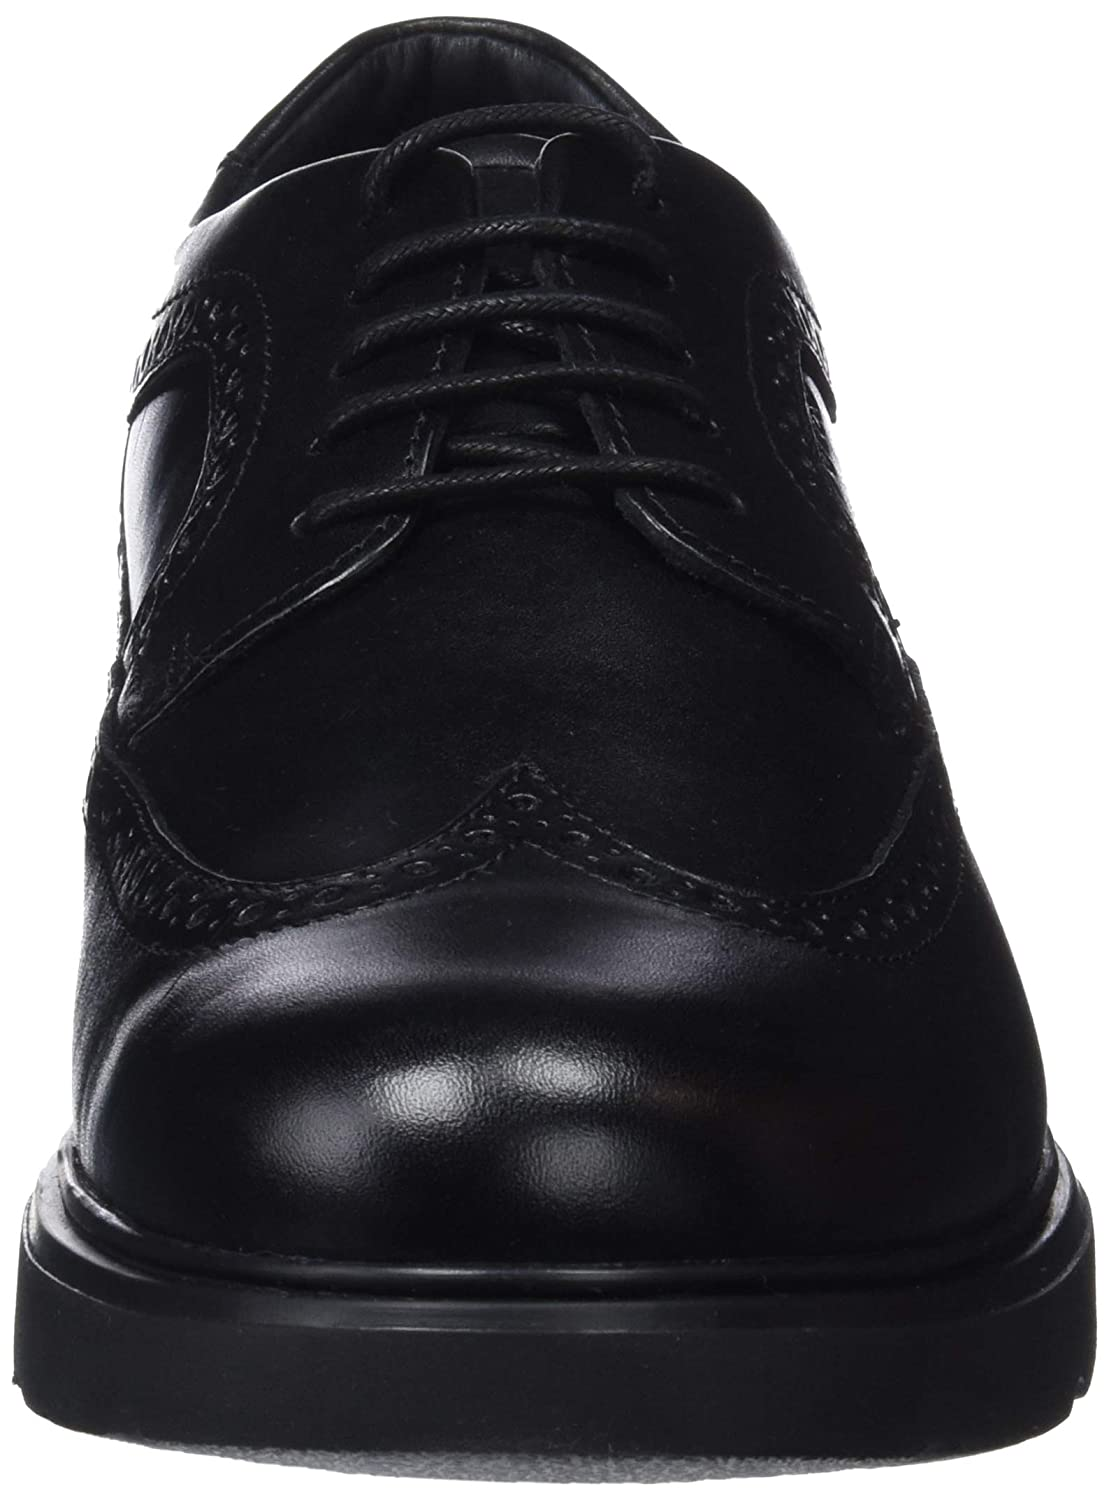 Geox Men s U Arrall B Brogues  Amazon.co.uk  Shoes   Bags 39dc018e214